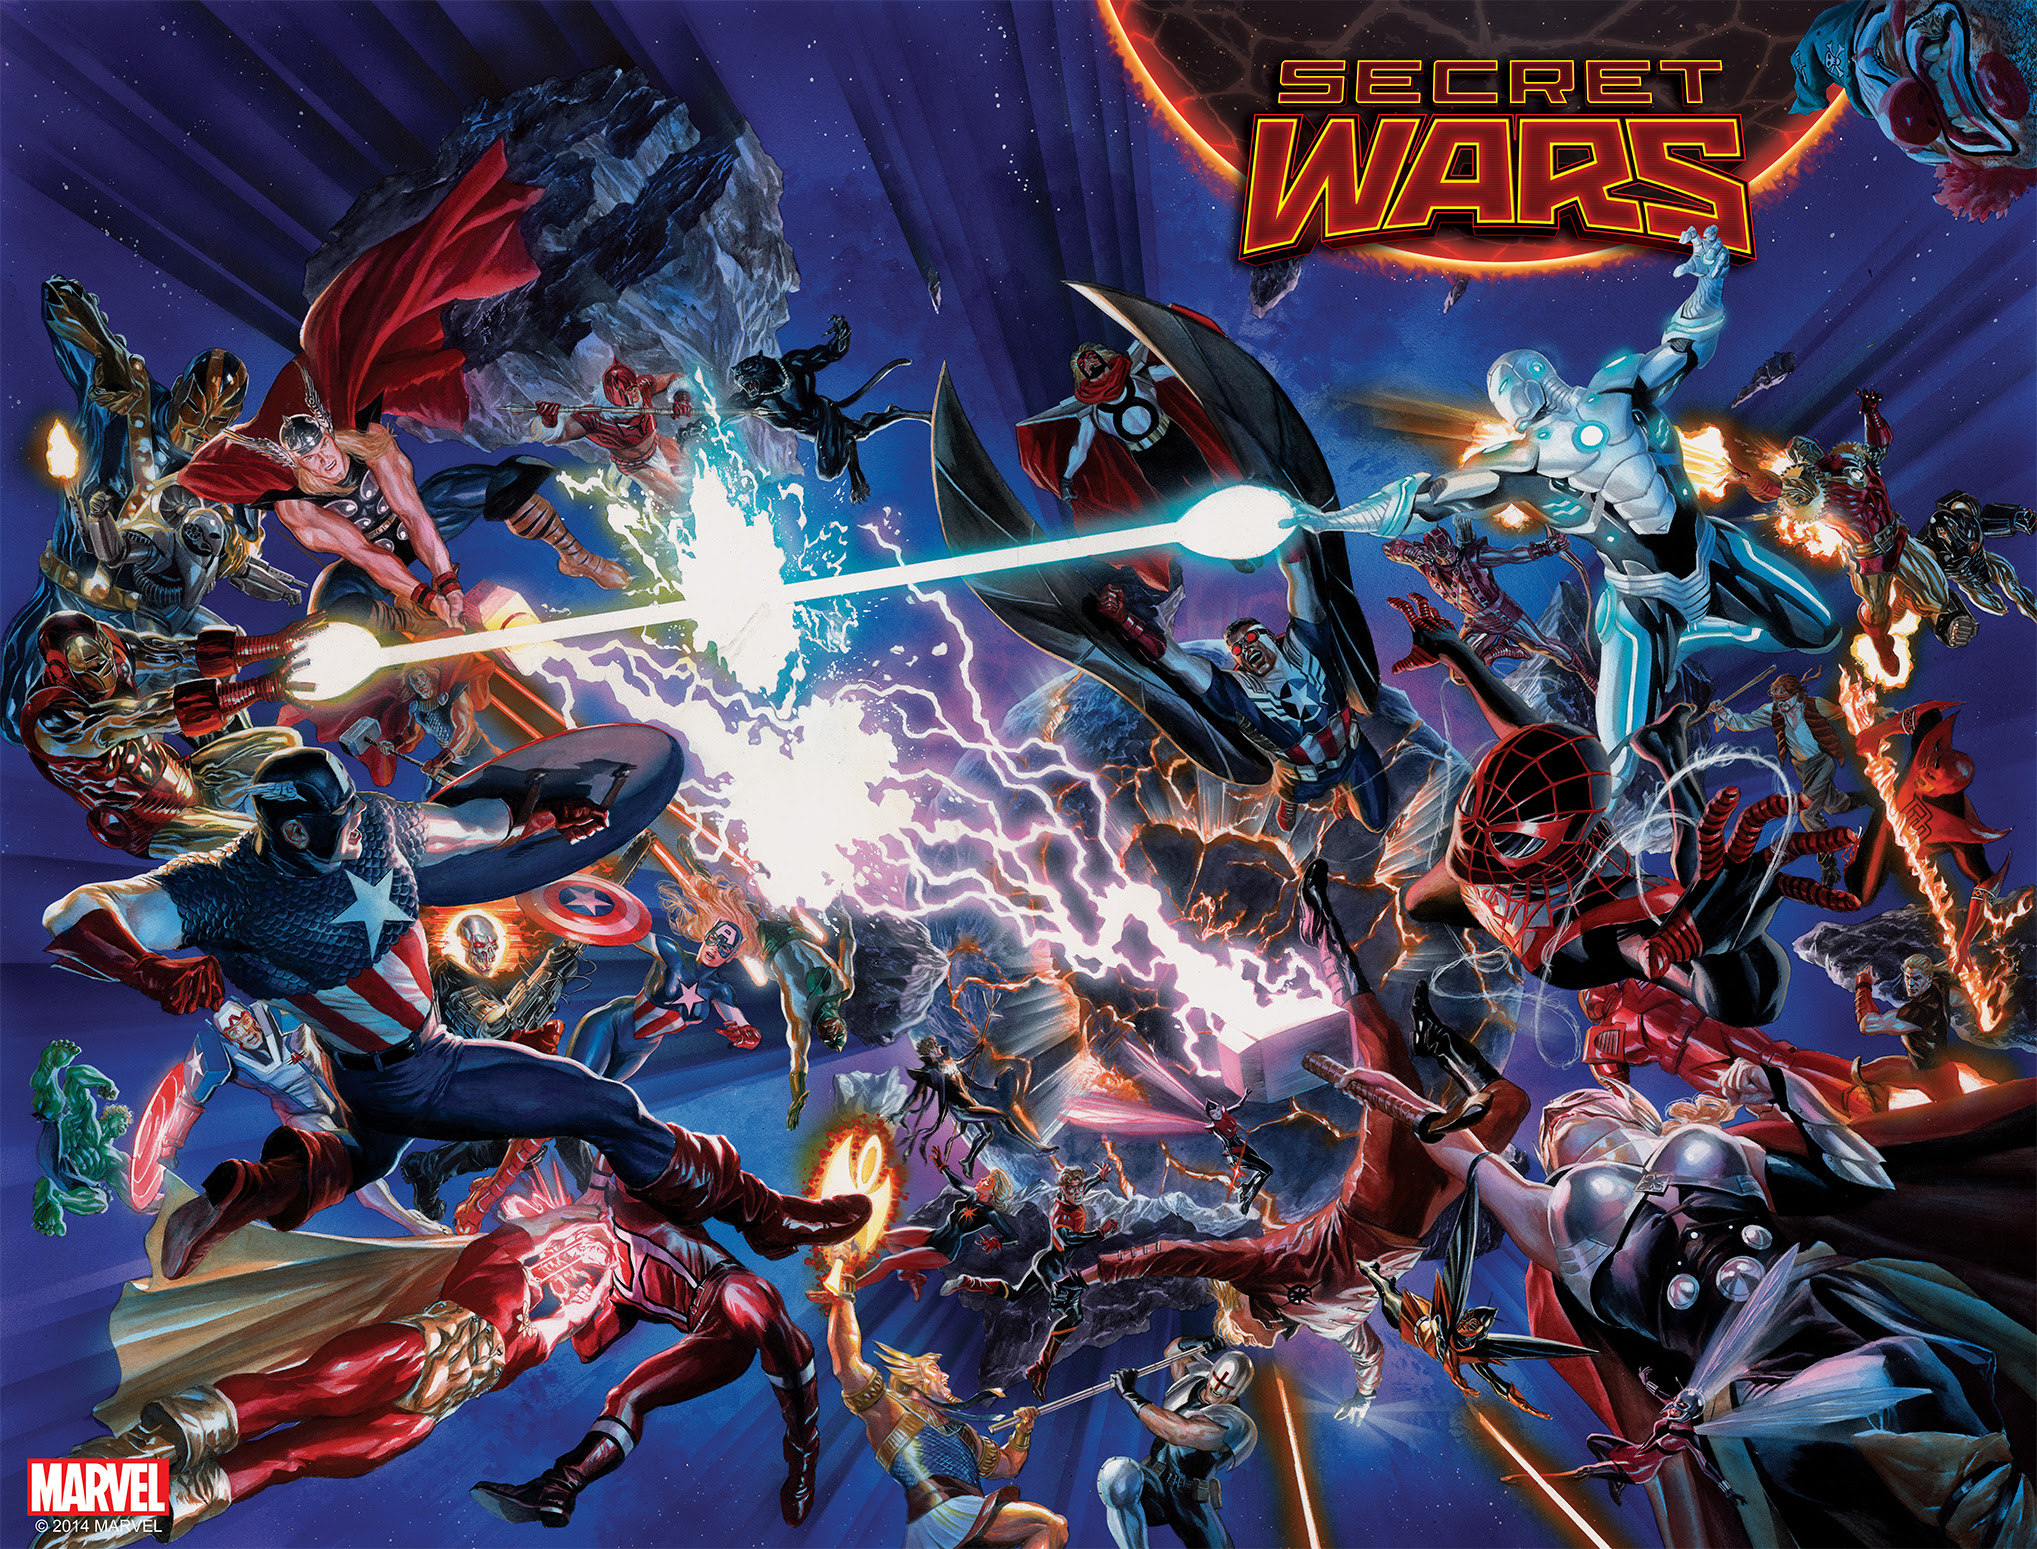 http://img4.wikia.nocookie.net/__cb20141010011016/marveldatabase/images/9/91/Secret_Wars_001.jpg